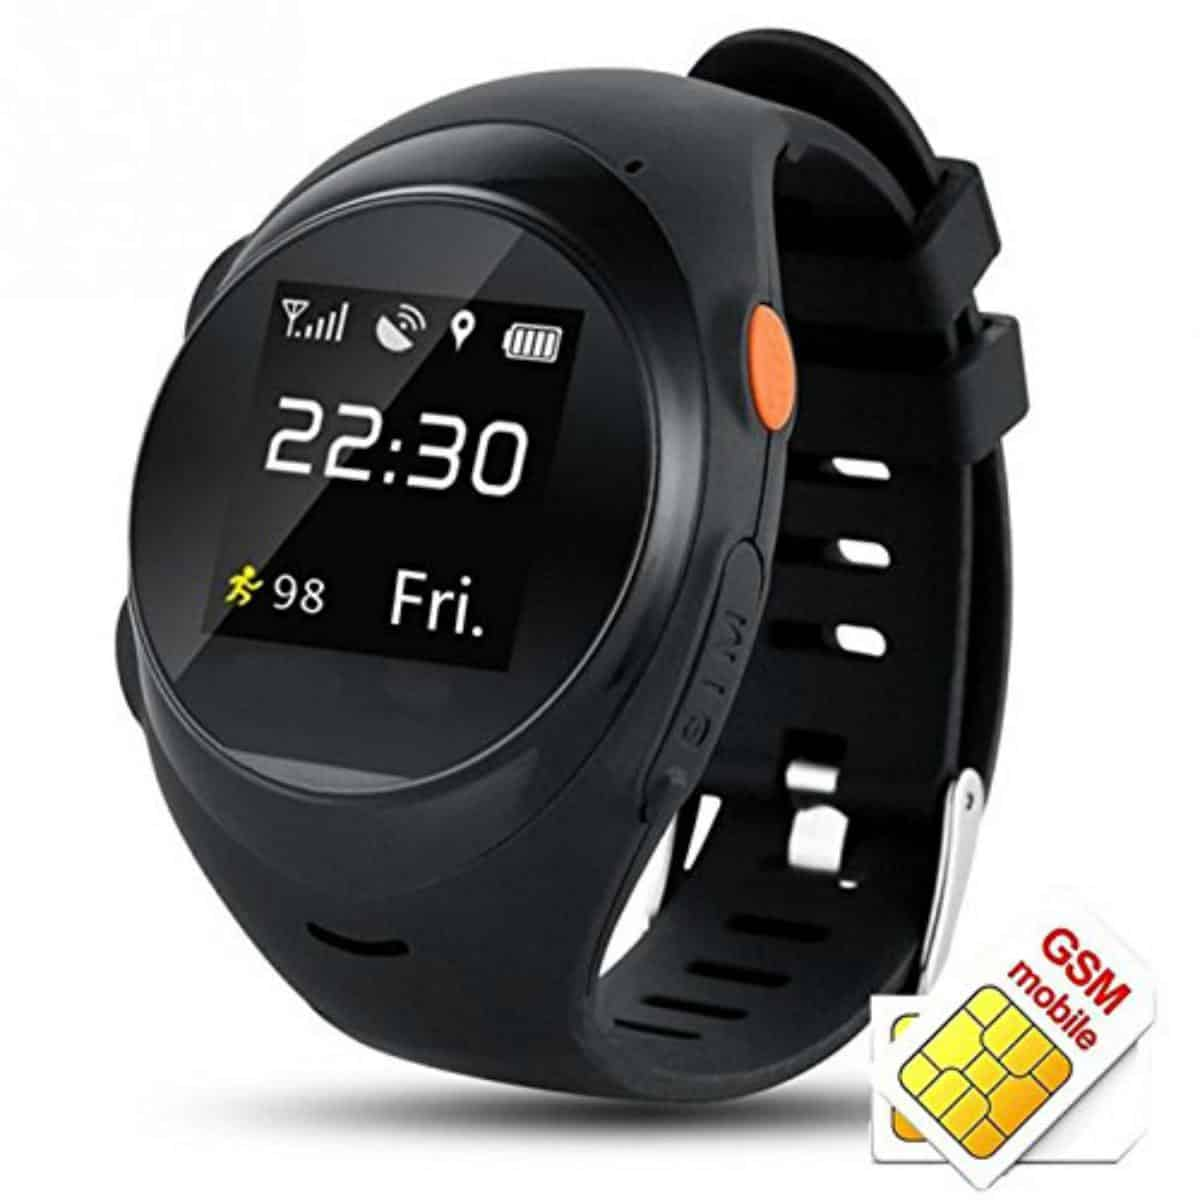 Anti-Lost Smart Watch | Best GPS-Enabled Kids Watches | Child Safety For The Modern Family